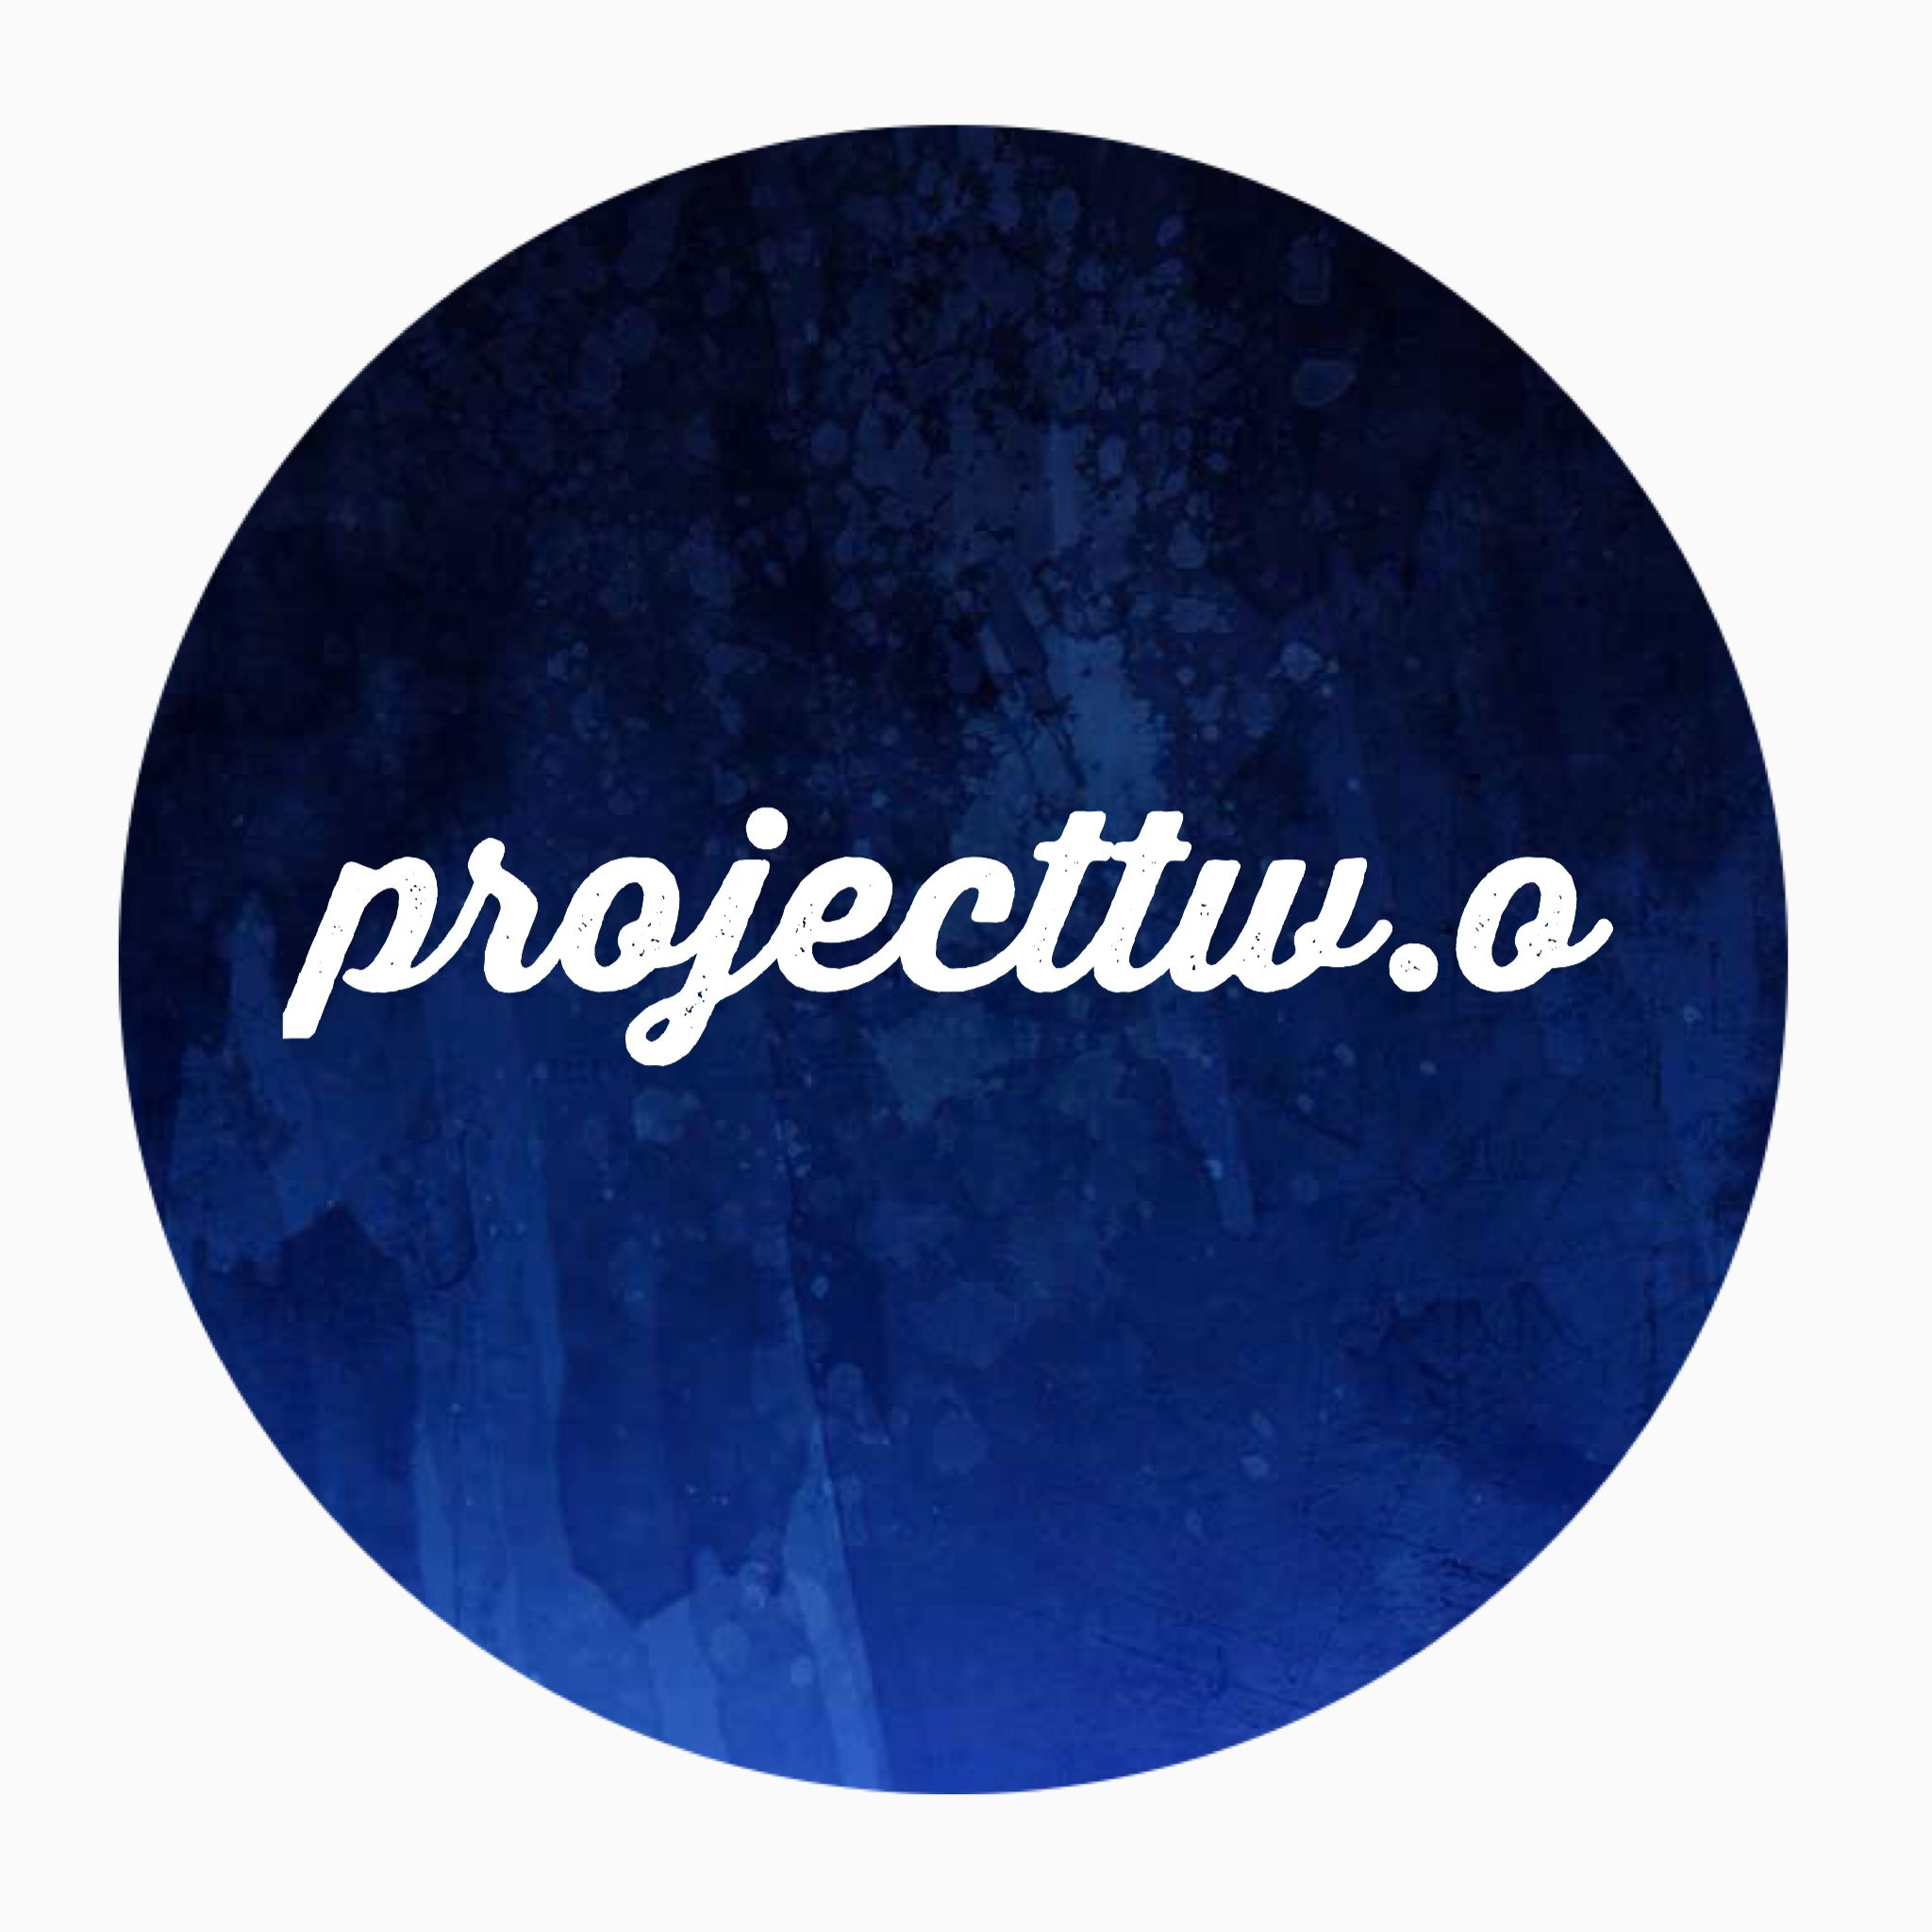 projecttw.o